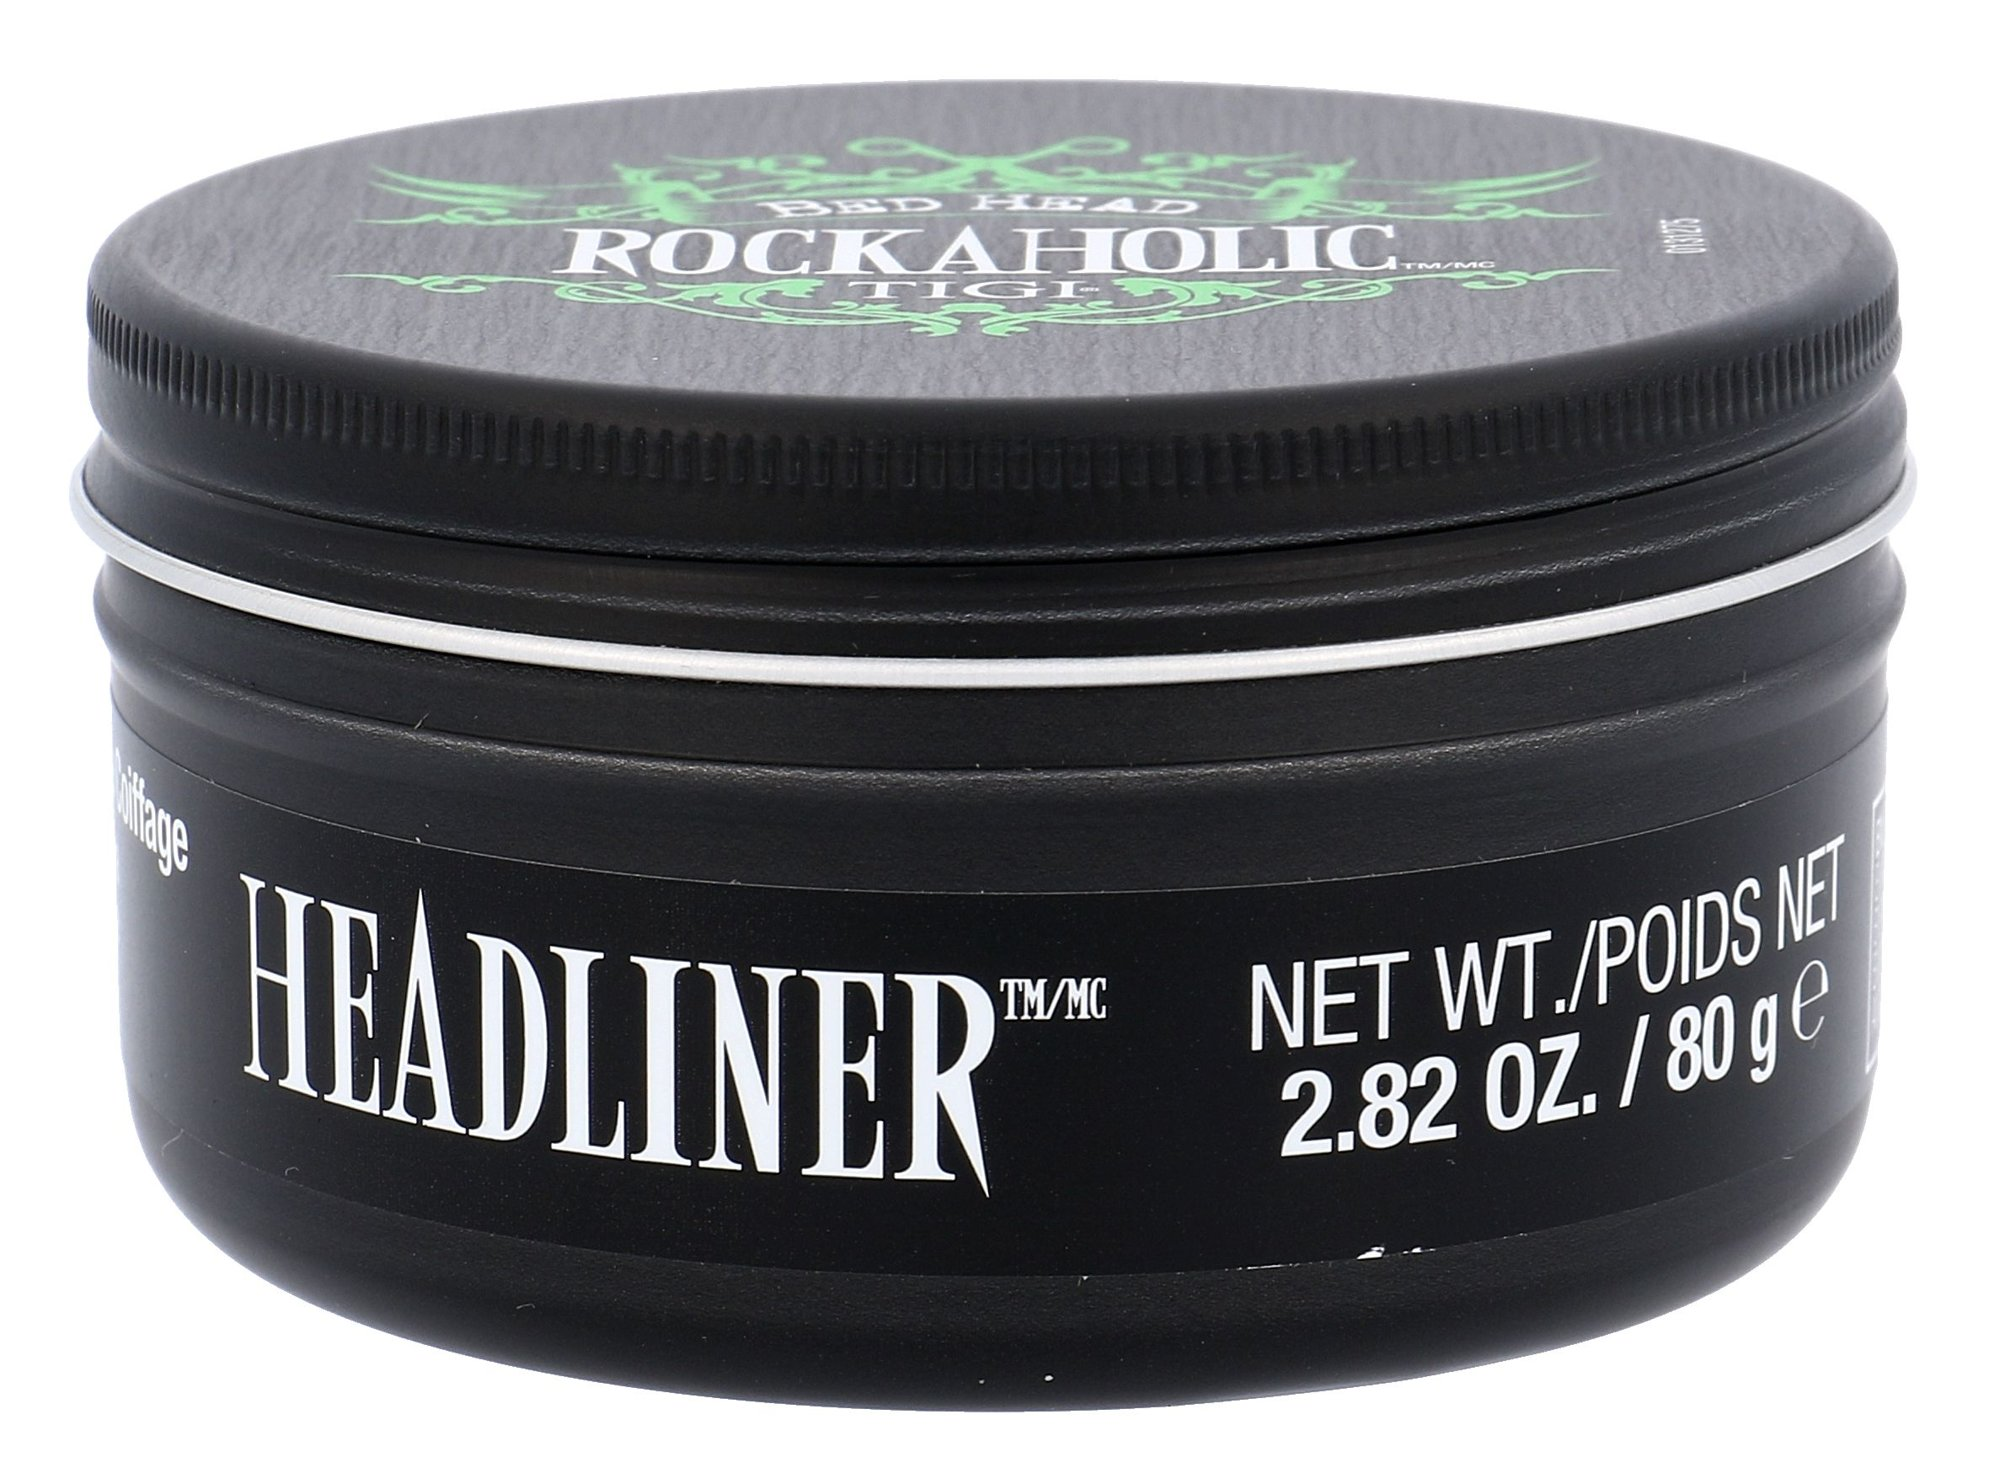 Tigi Rockaholic Headliner Cosmetic 80ml